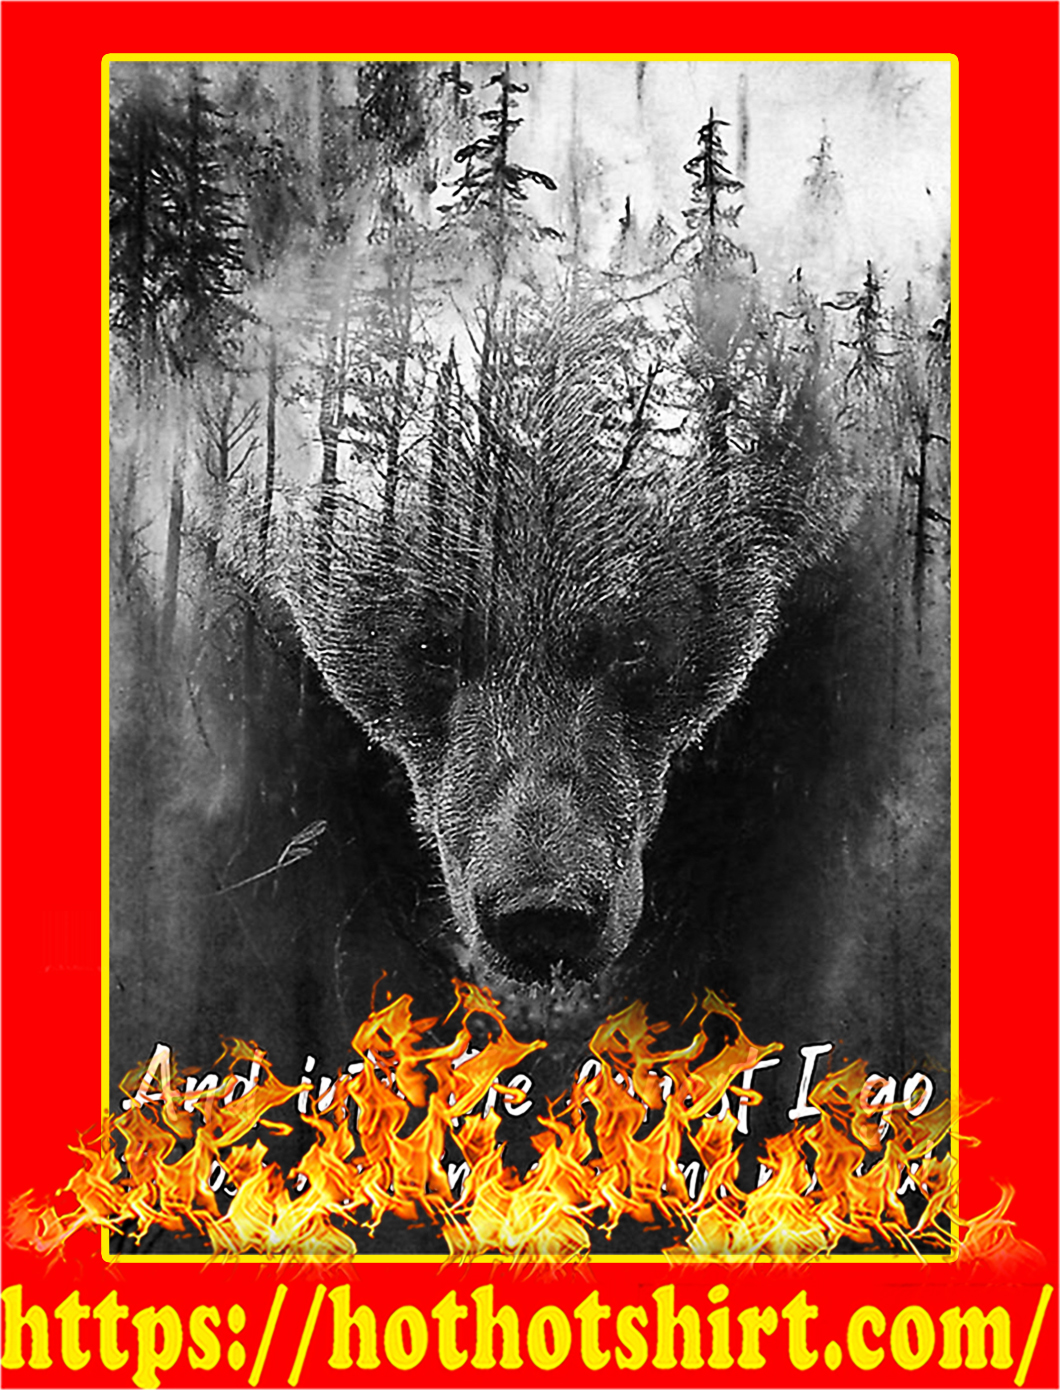 Bear and into the forest I go poster - A1